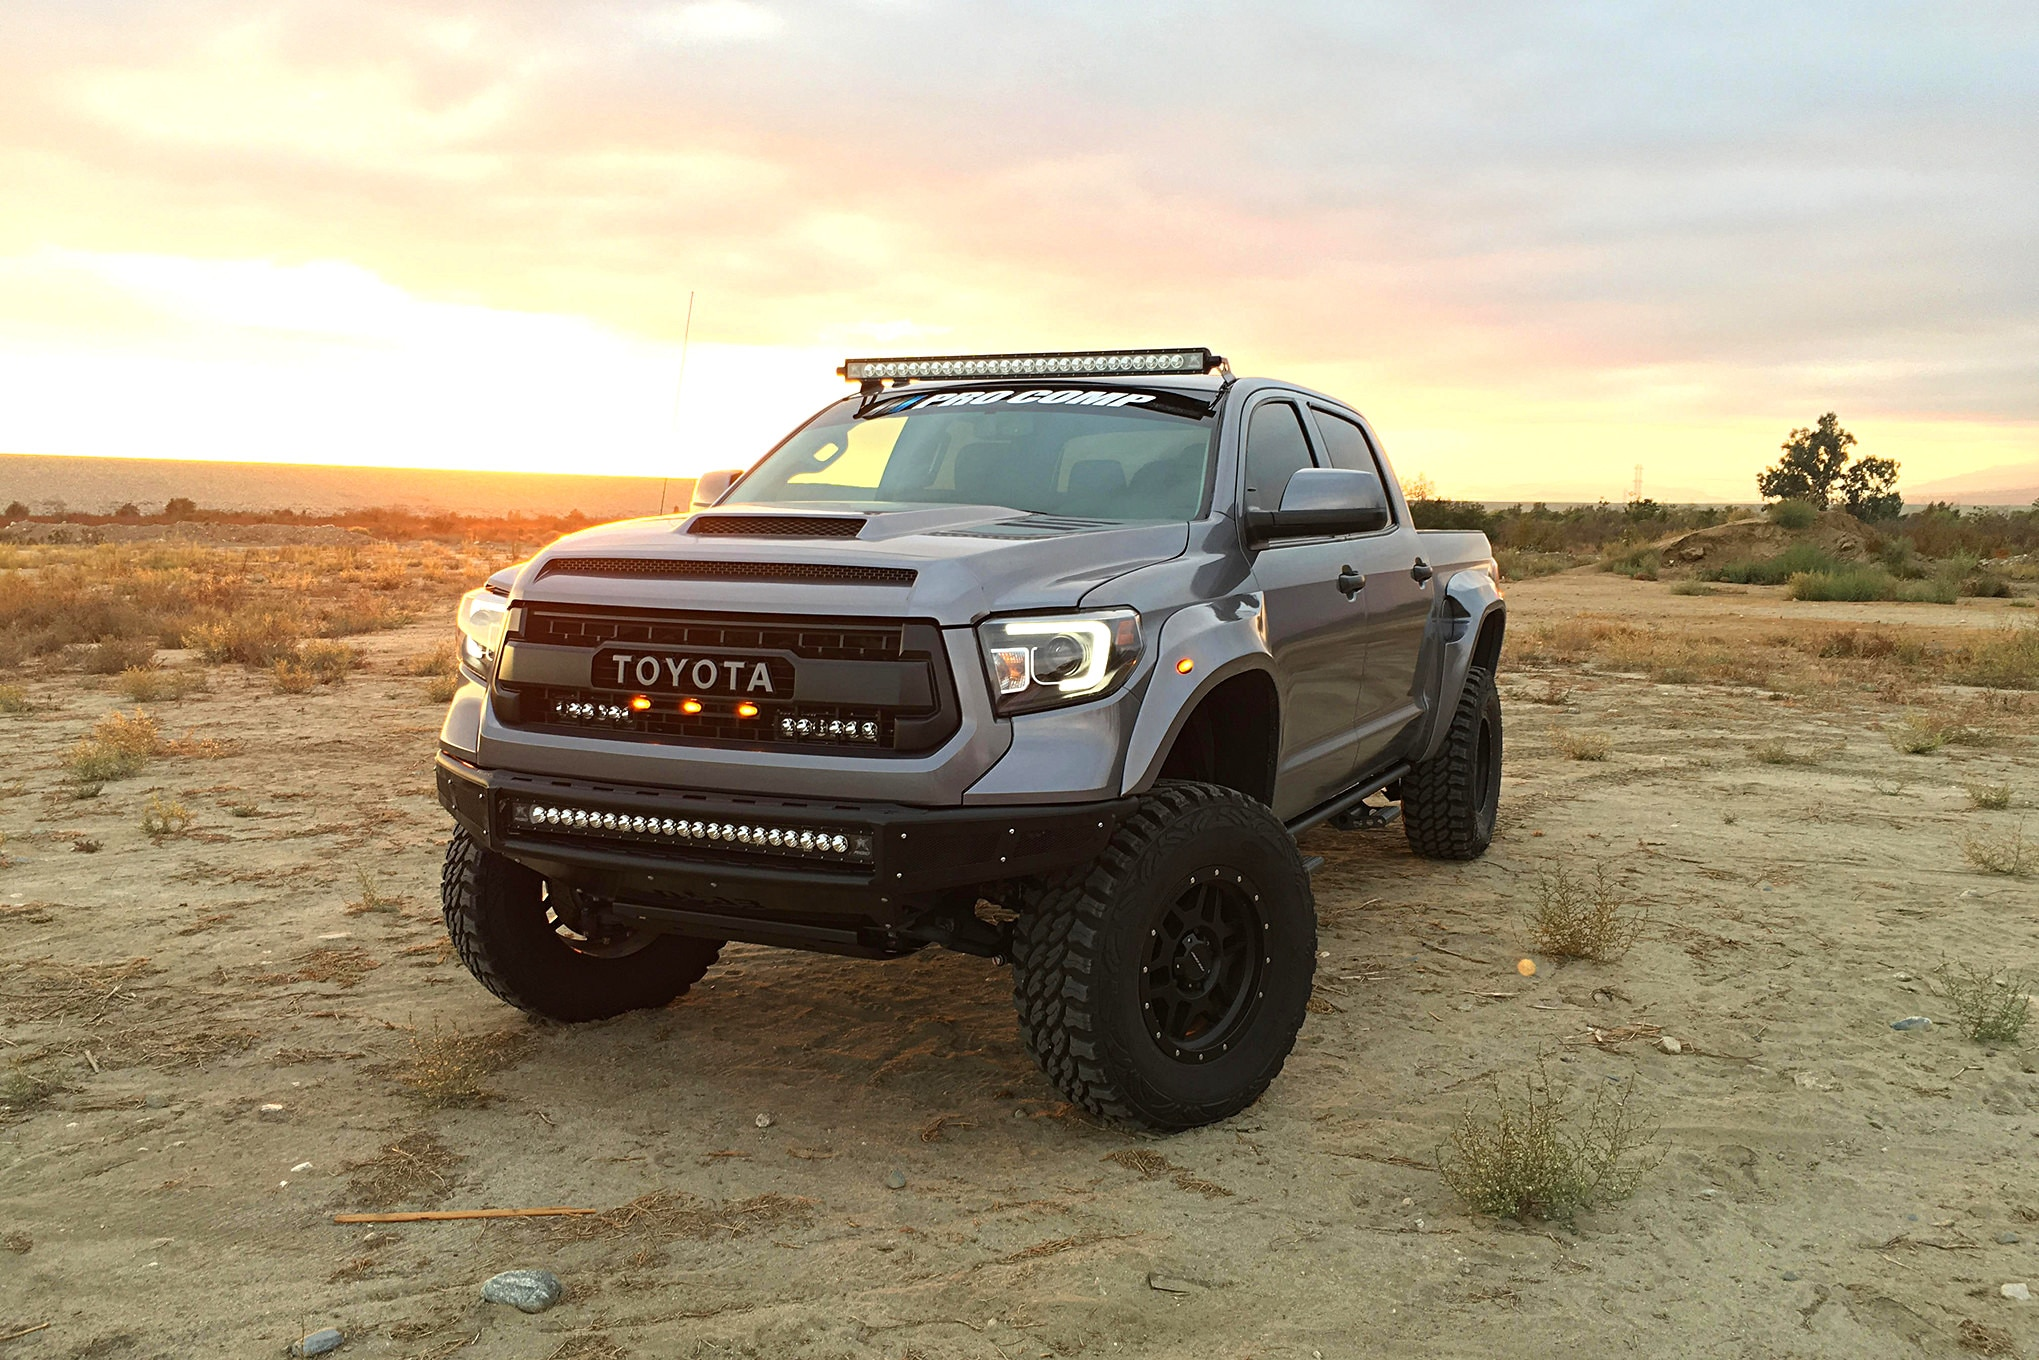 Installing Pro Comp's Tundra Long Travel Suspension System